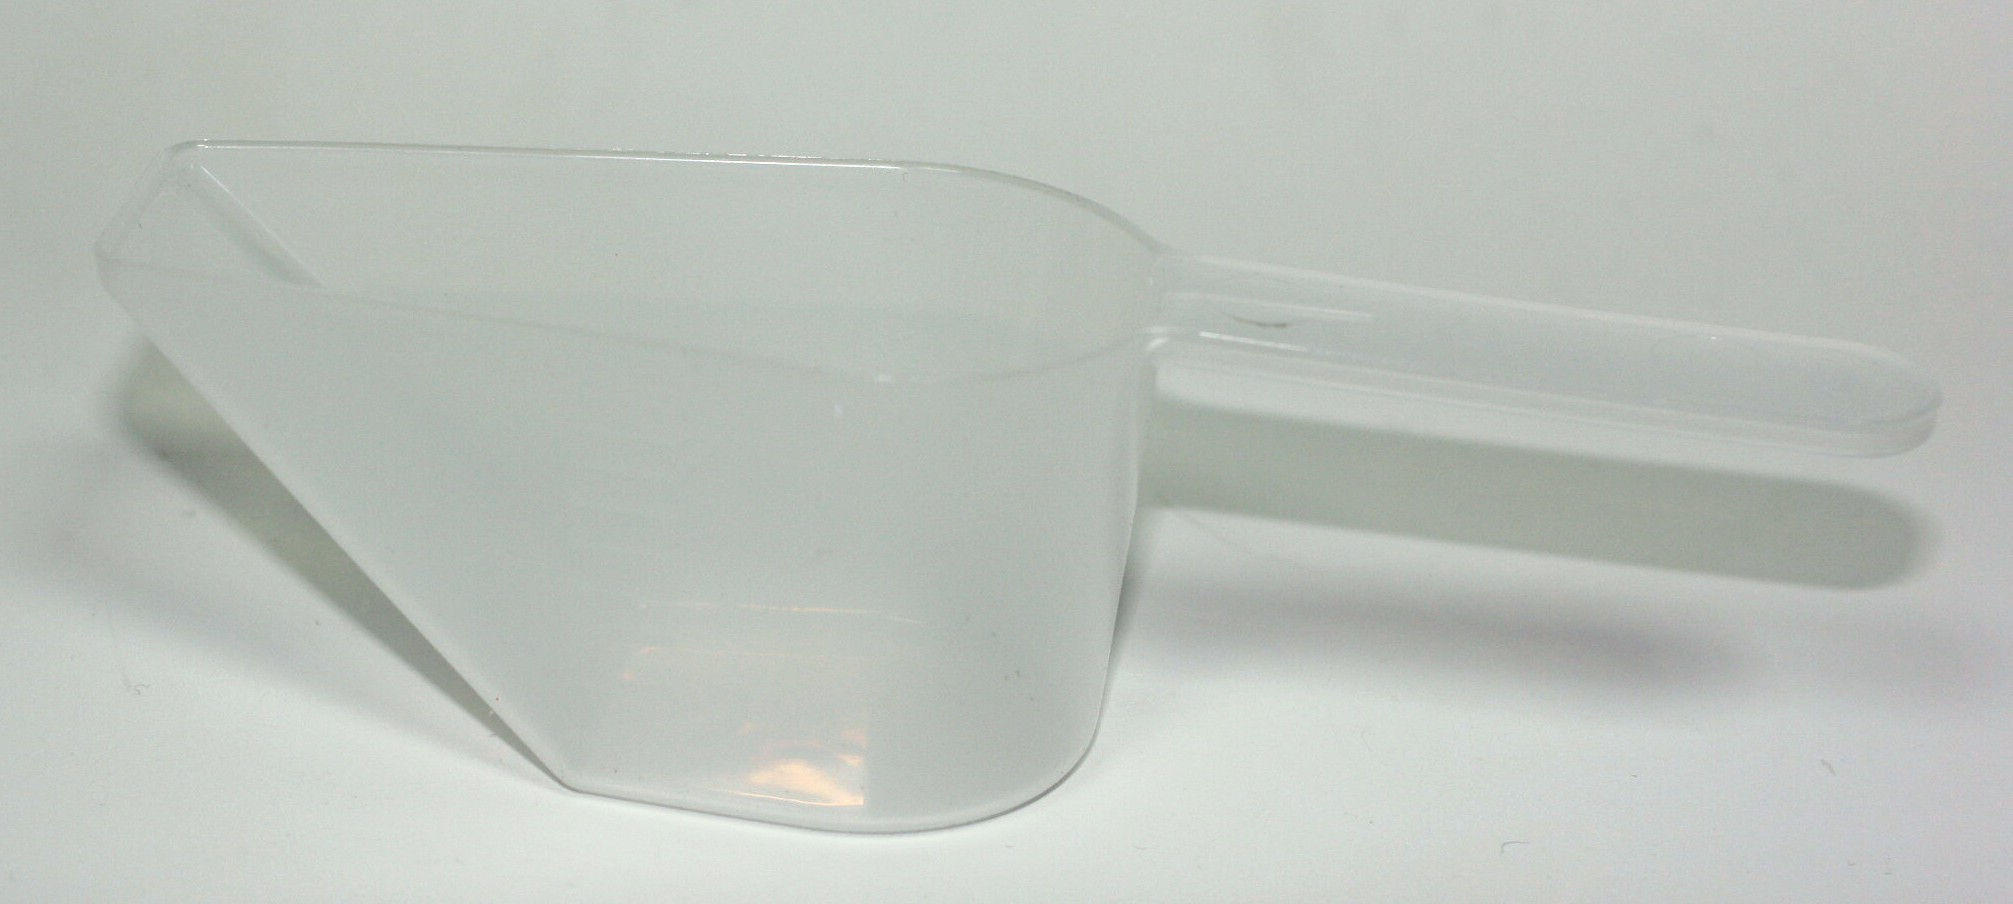 100ml MEASURING SCOOP NATURAL 10ml INCREMENTS